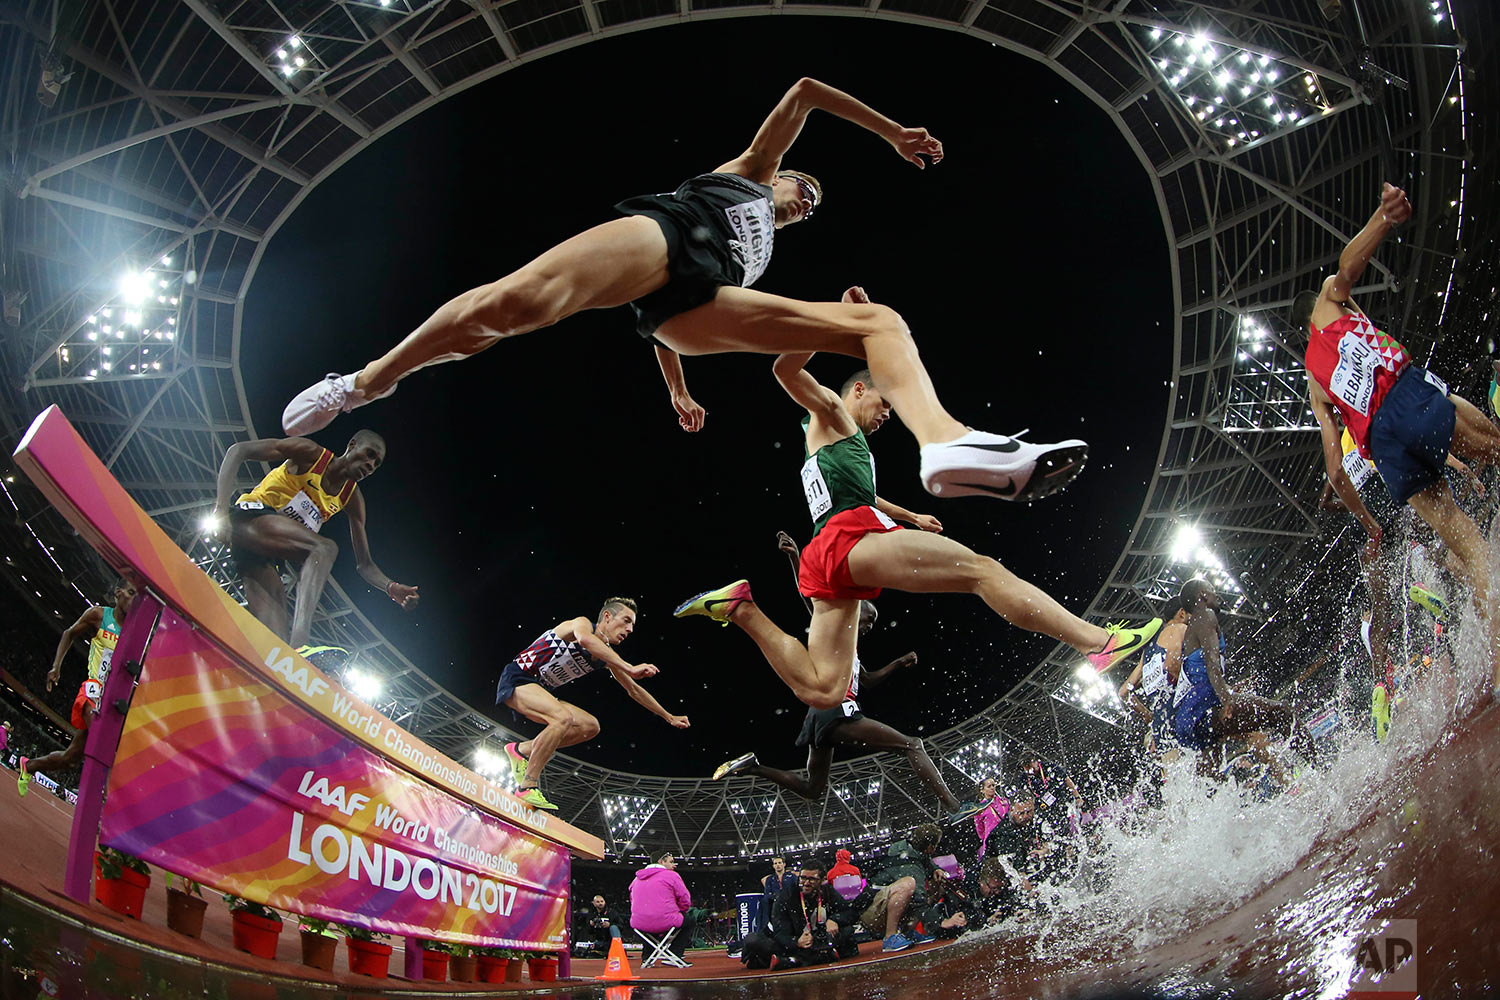 Athletes compete in the men's 3000-meter steeplechase final during the World Athletics Championships in London Tuesday, Aug. 8, 2017. (AP Photo/Matthias Schrader)